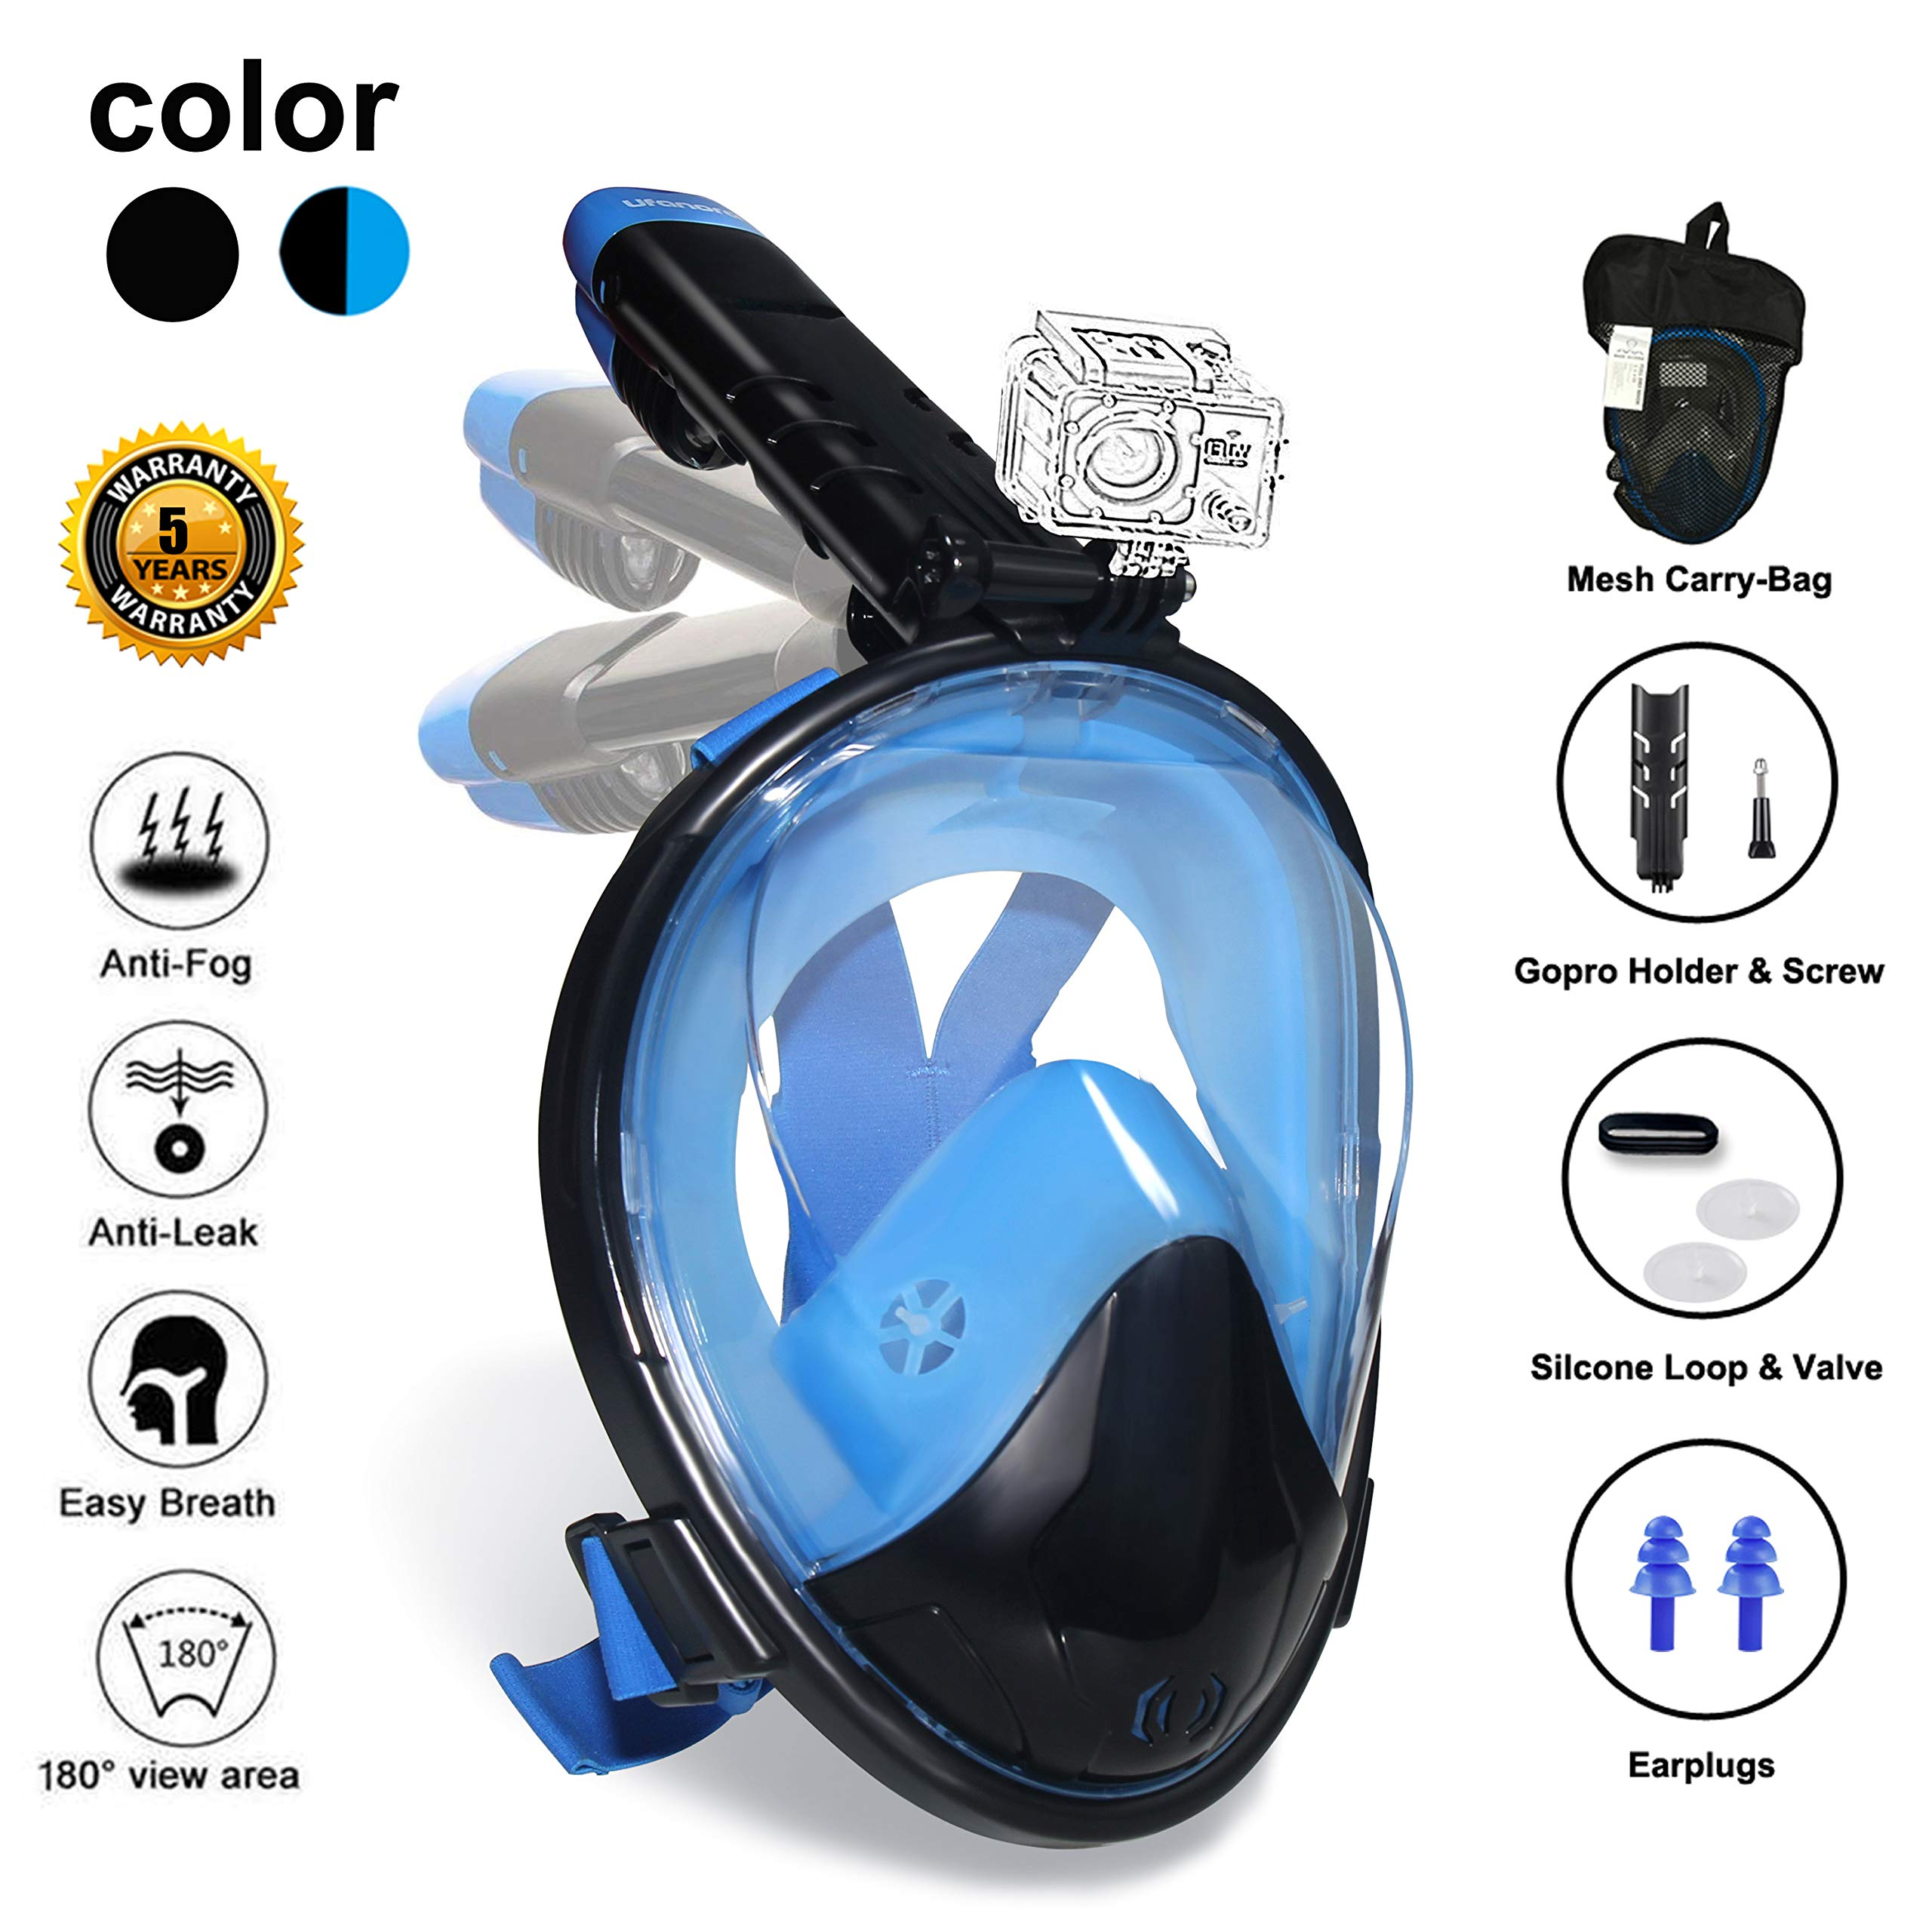 Ufanore Full Face Snorkel Mask, Snorkeling Mask Adult with Detachable Camera Mount, Foldable 180° Panoramic View, Free Breathing, Anti-Fog and Anti-Leak by Ufanore